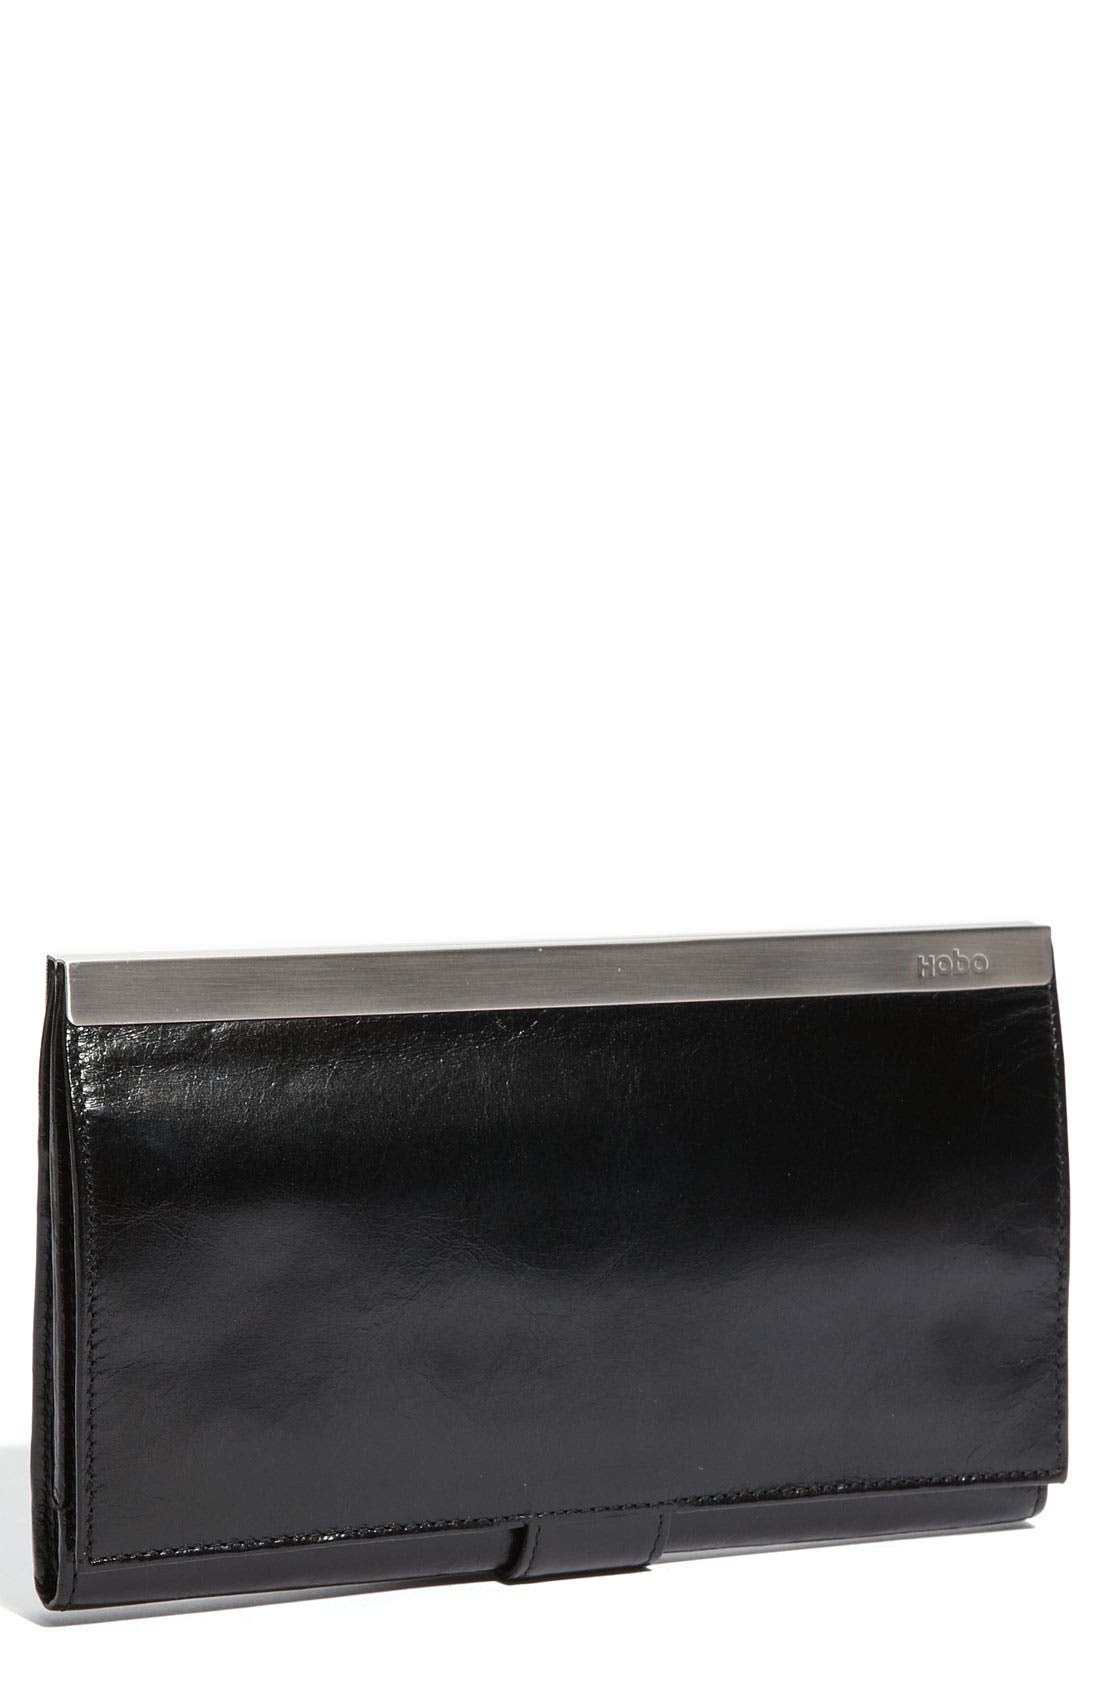 Main Image - Hobo 'Maxine' Wallet